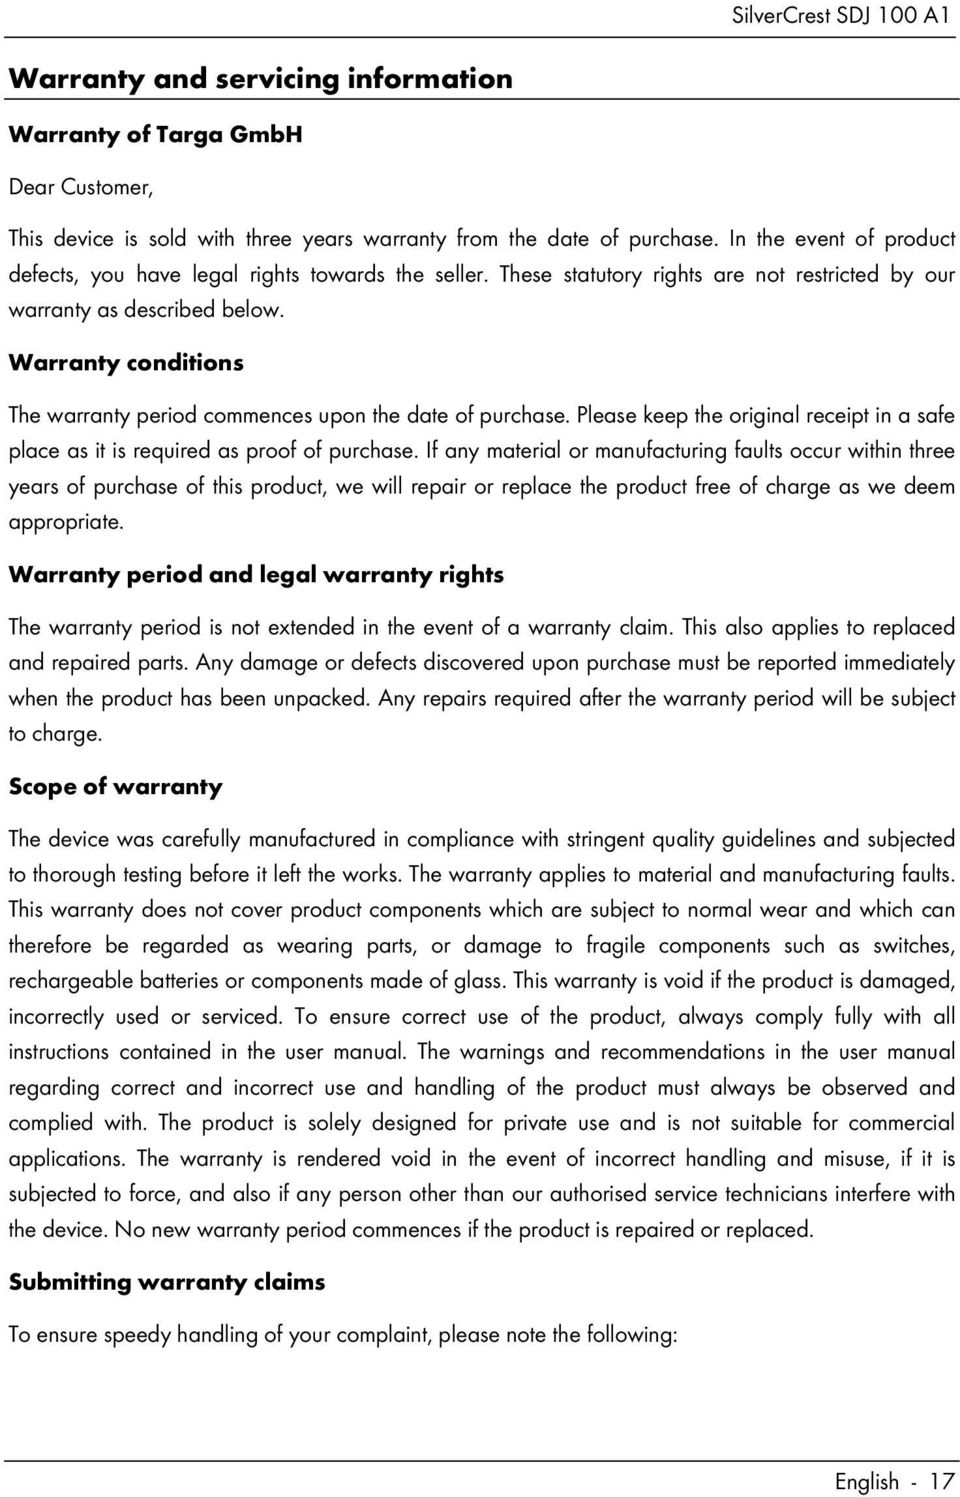 Warranty conditions The warranty period commences upon the date of purchase. Please keep the original receipt in a safe place as it is required as proof of purchase.